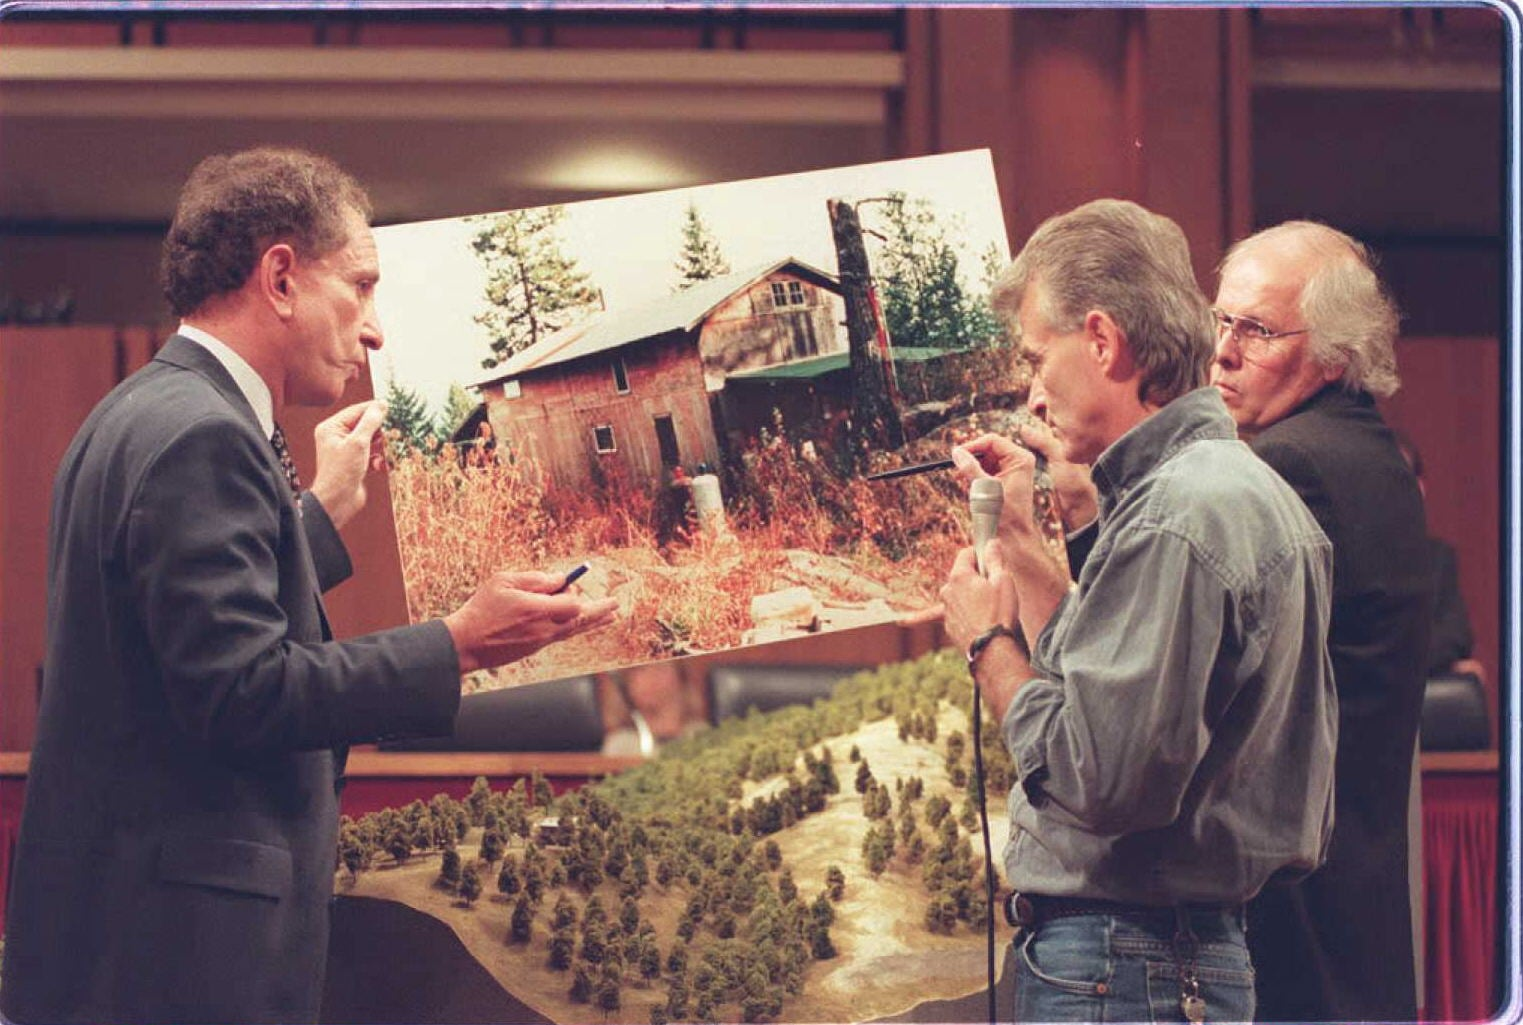 WASHINGTON, DC - SEPTEMBER 6:  Randy Weaver (C) shows a model of his Ruby Ridge, Idaho cabin to US Senator Arlen Specter, R-PA ,(L), 06 September on Capitol Hill during Senate hearings investigating the events surrounding the 1992 standoff with federal agents. Weavers' wife and son were killed by FBI agents during the seige. AFP PHOTO  (Photo credit should read PAMELA PRICE/AFP via Getty Images)